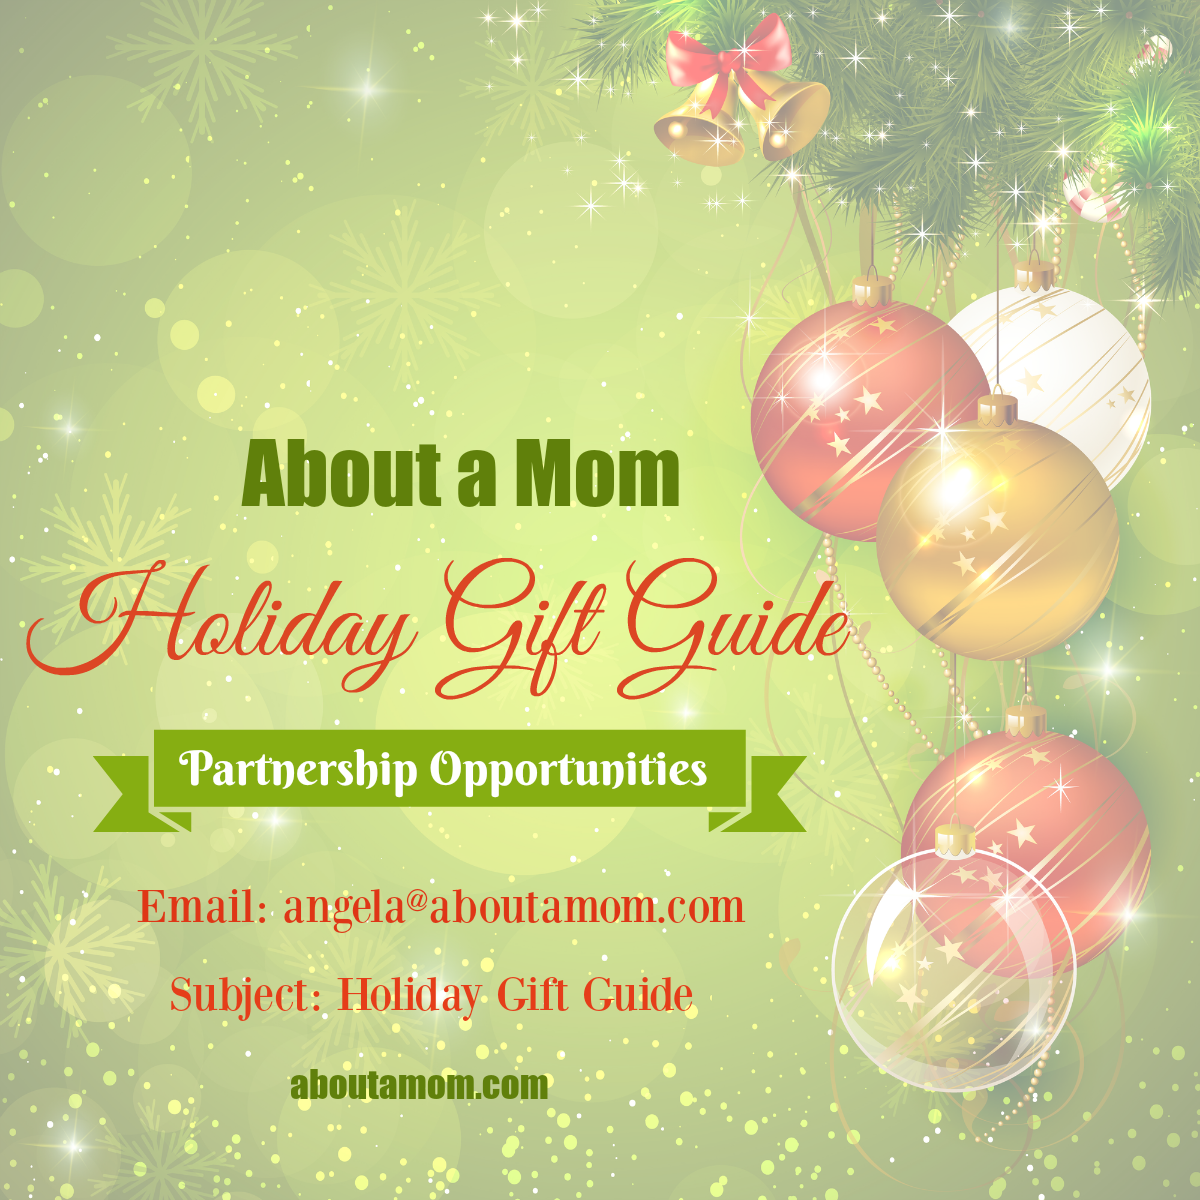 About a Mom Holiday Gift Guide Partnership Opportunities